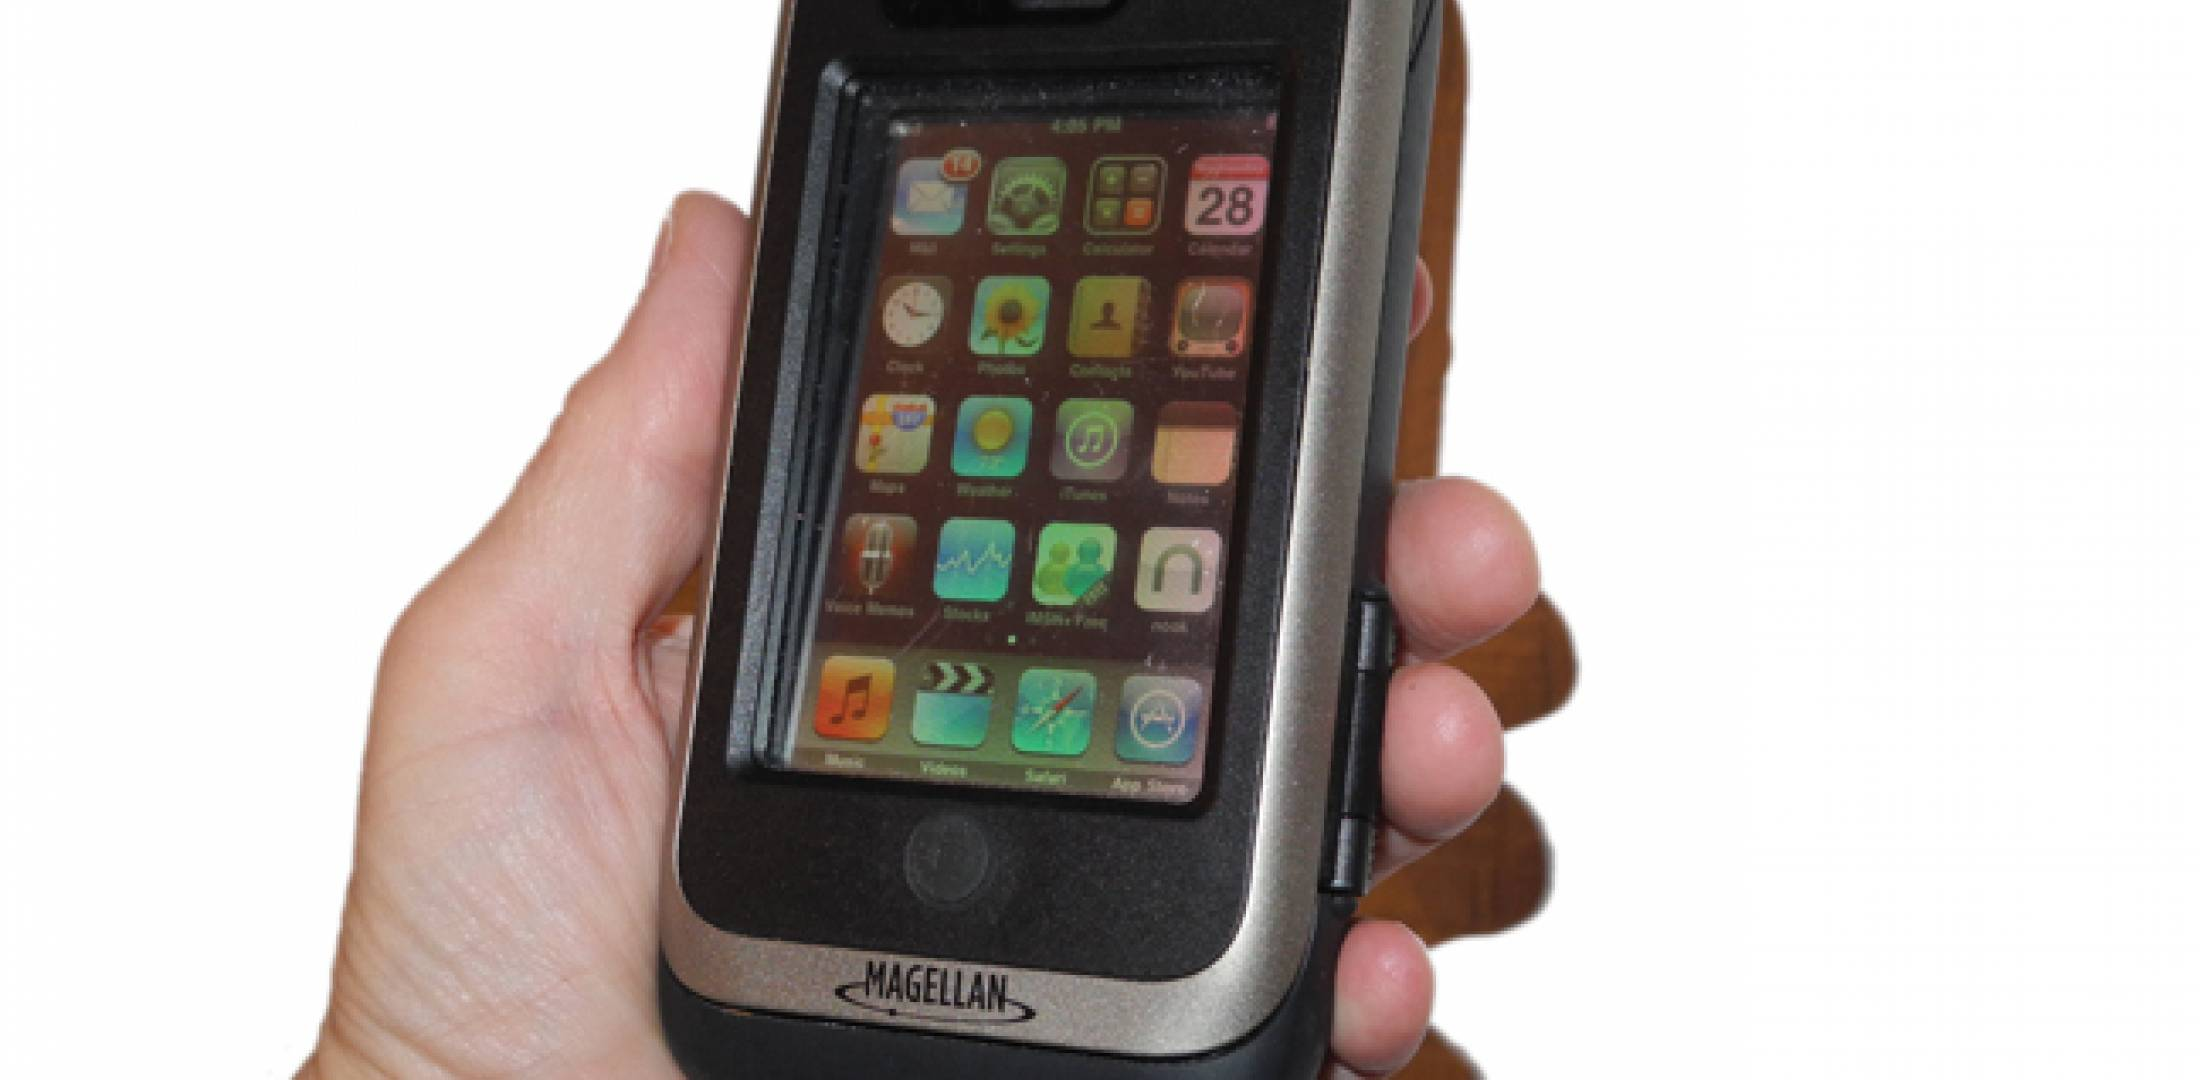 Magellan's ToughCase  gives the iPod GPS capability.